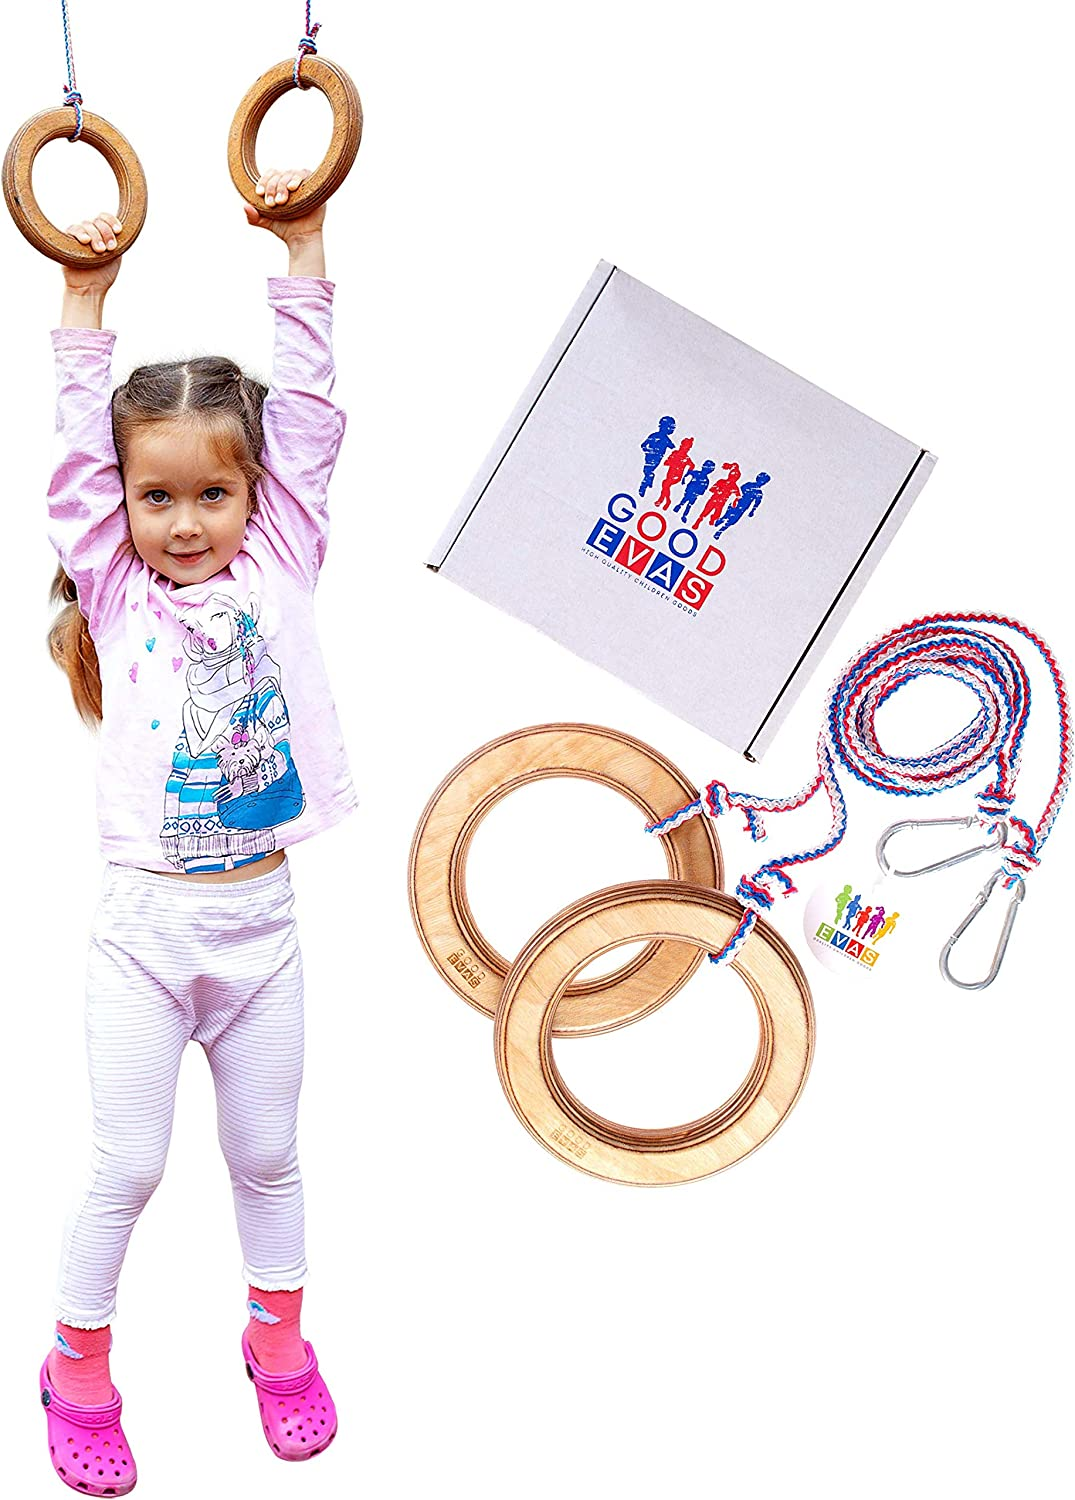 Kids Gym Wooden Rings for Playground and Jungle Gym - Gymnastic Toys for Boys and Girls